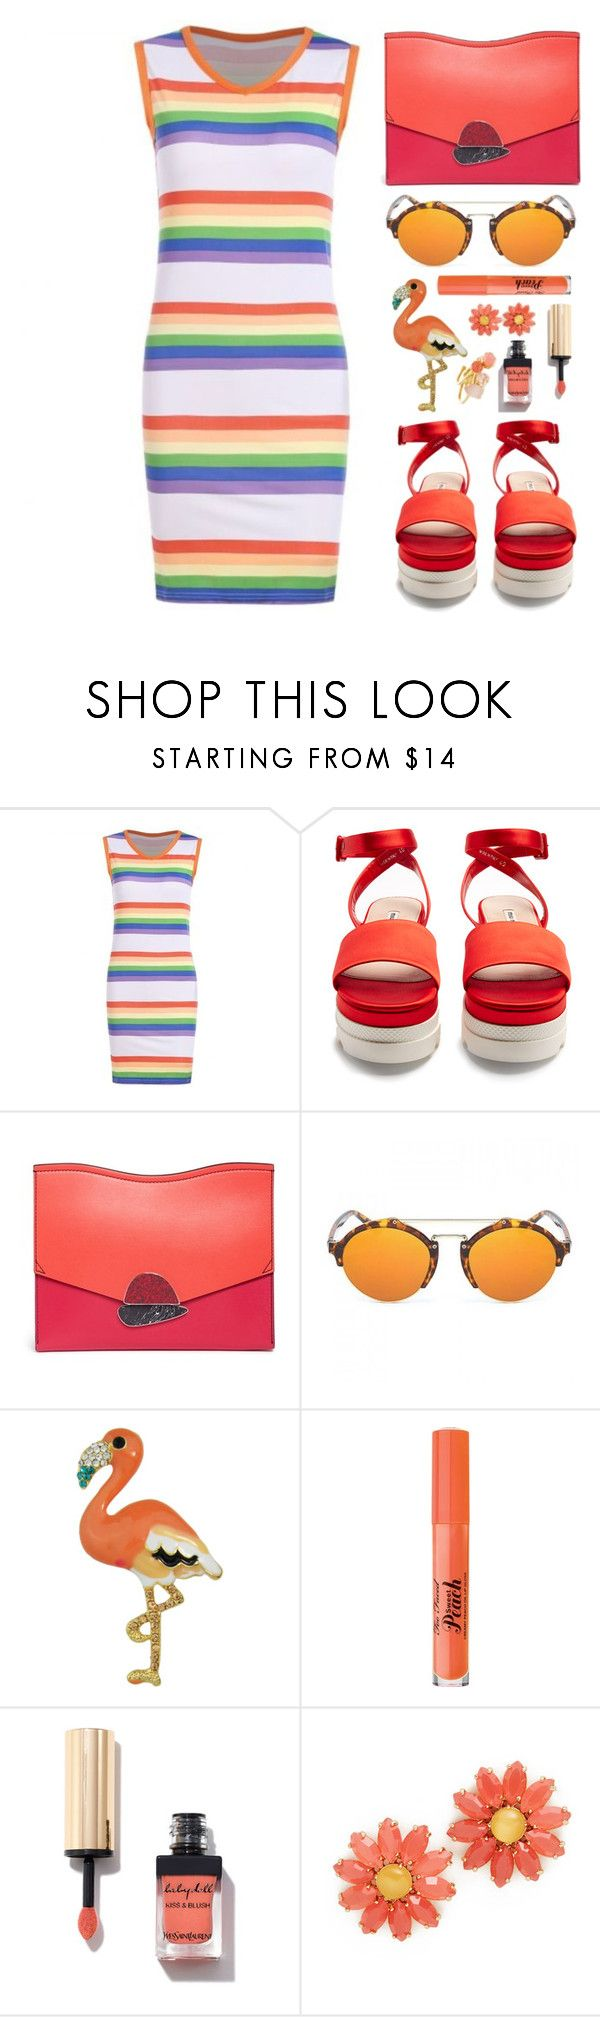 """Striped Mini Dress"" by simona-altobelli ❤ liked on Polyvore featuring Miu Miu, Proenza Schouler, Too Faced Cosmetics and Kate Spade"